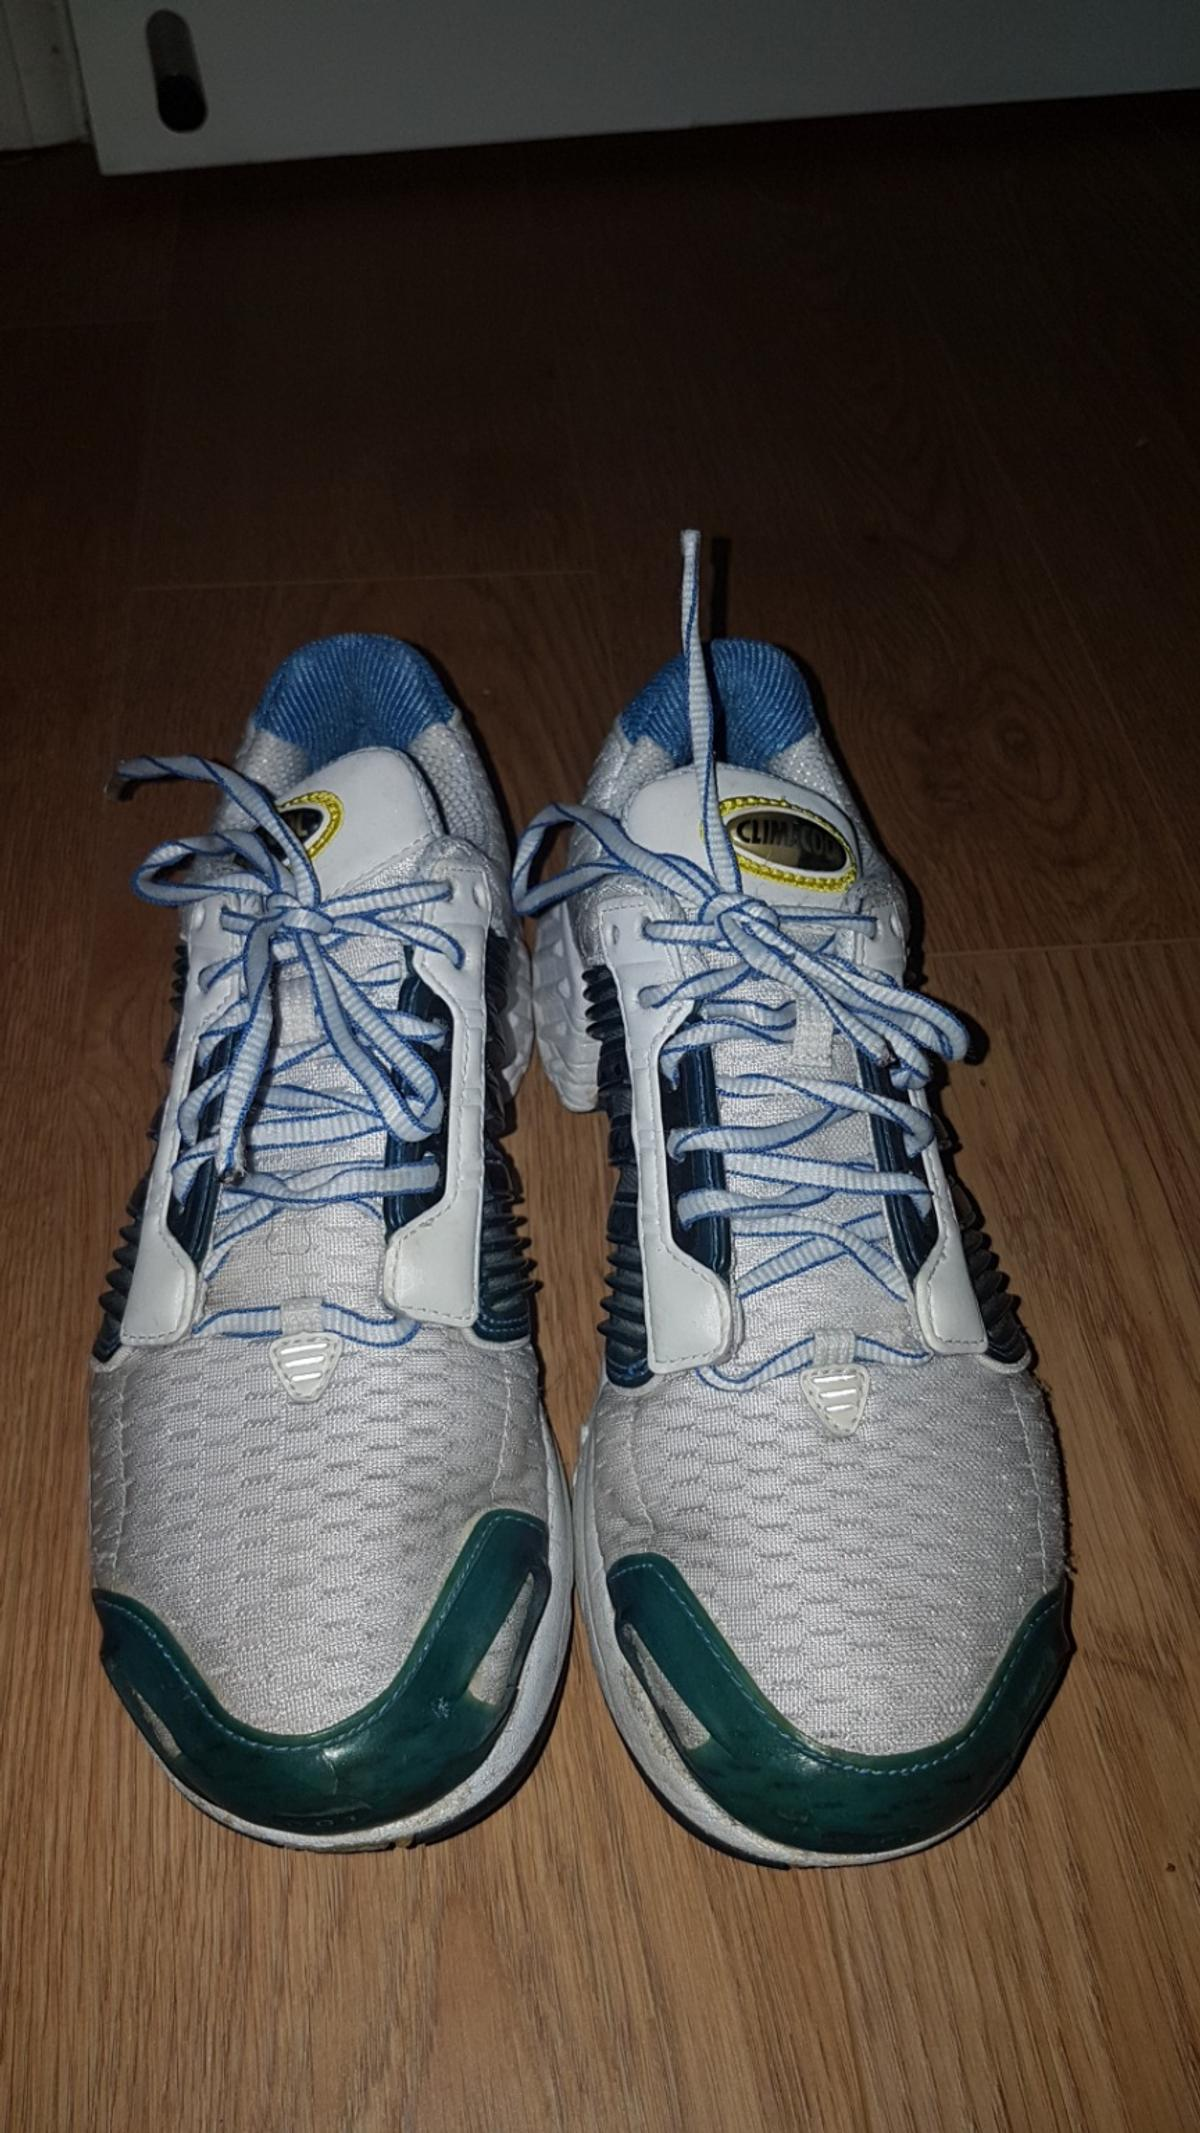 brand new 980a7 67d23 Adidas Climacool Running Shoes